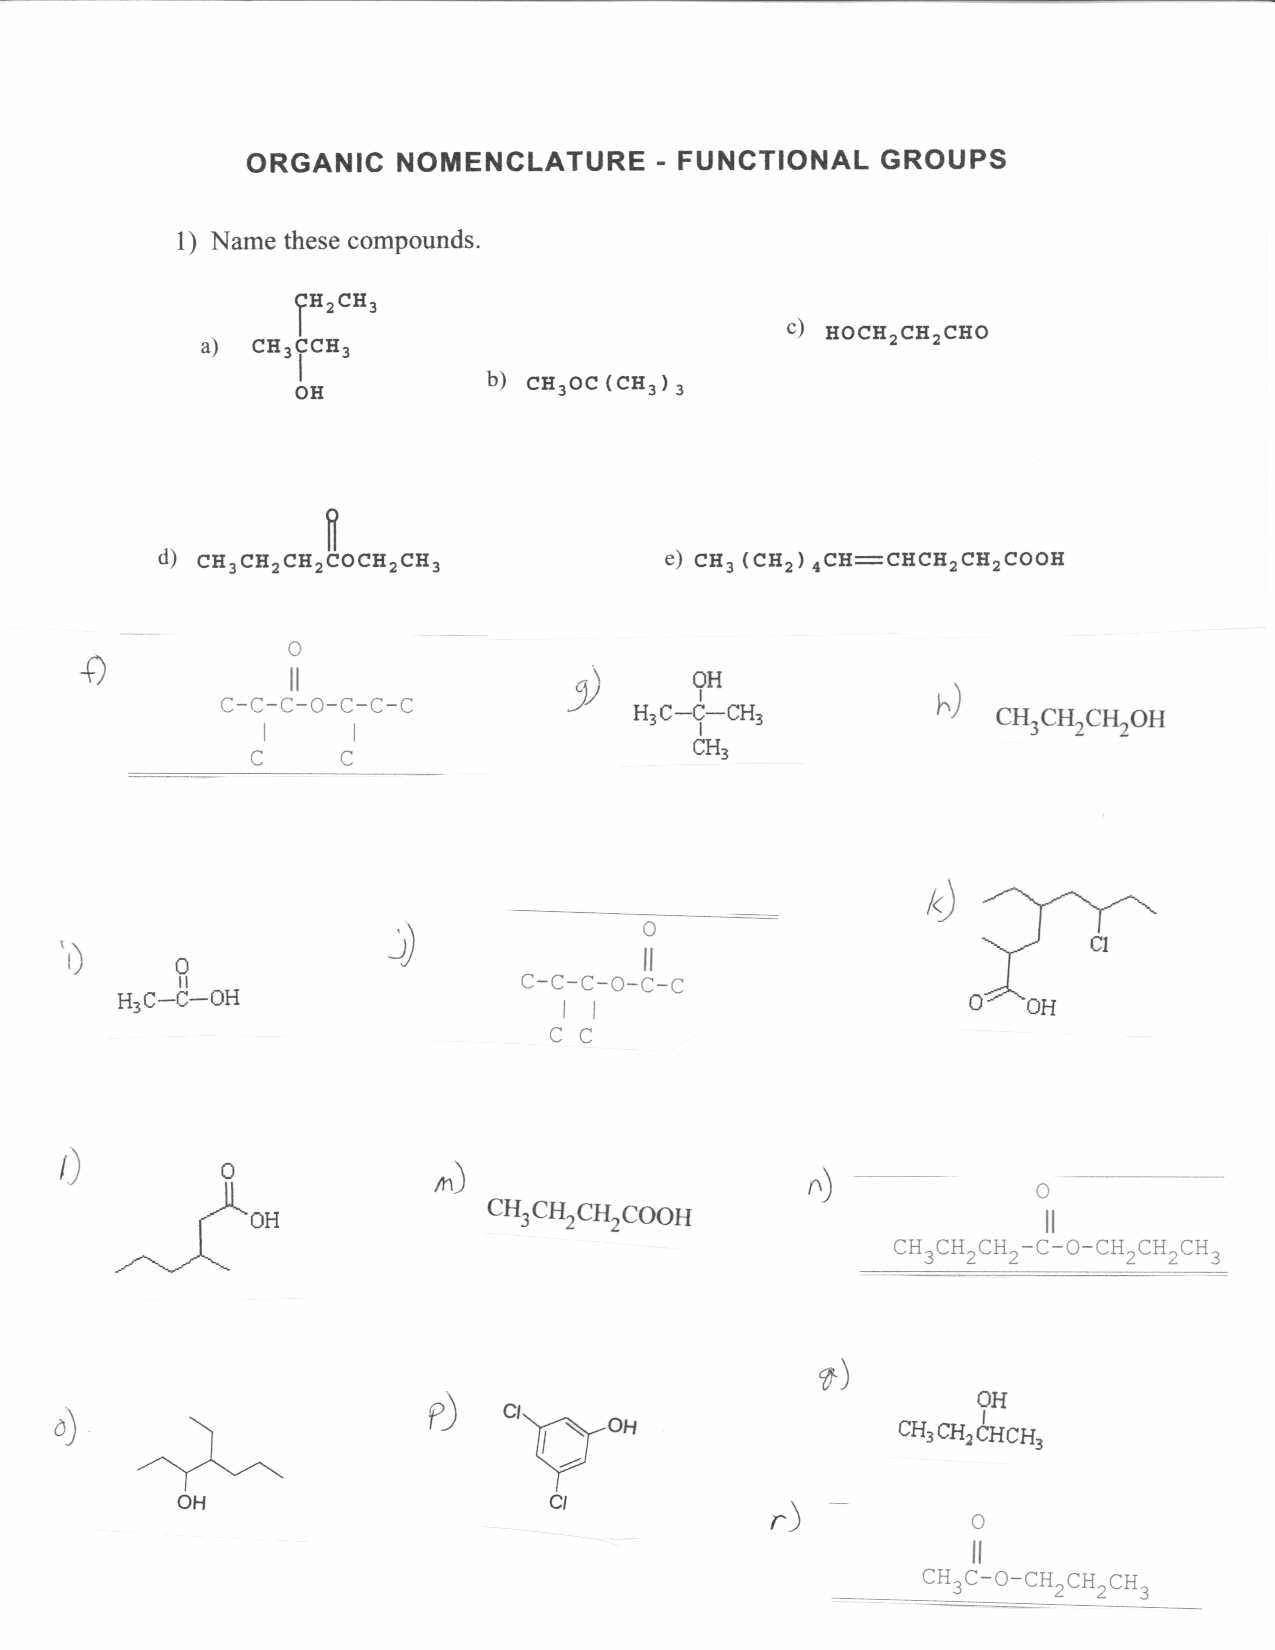 Free Worksheet Ionic Compounds Worksheet Answers naming rules worksheet 1 answer key delibertad nomenclature answers worksheets for school pigmu